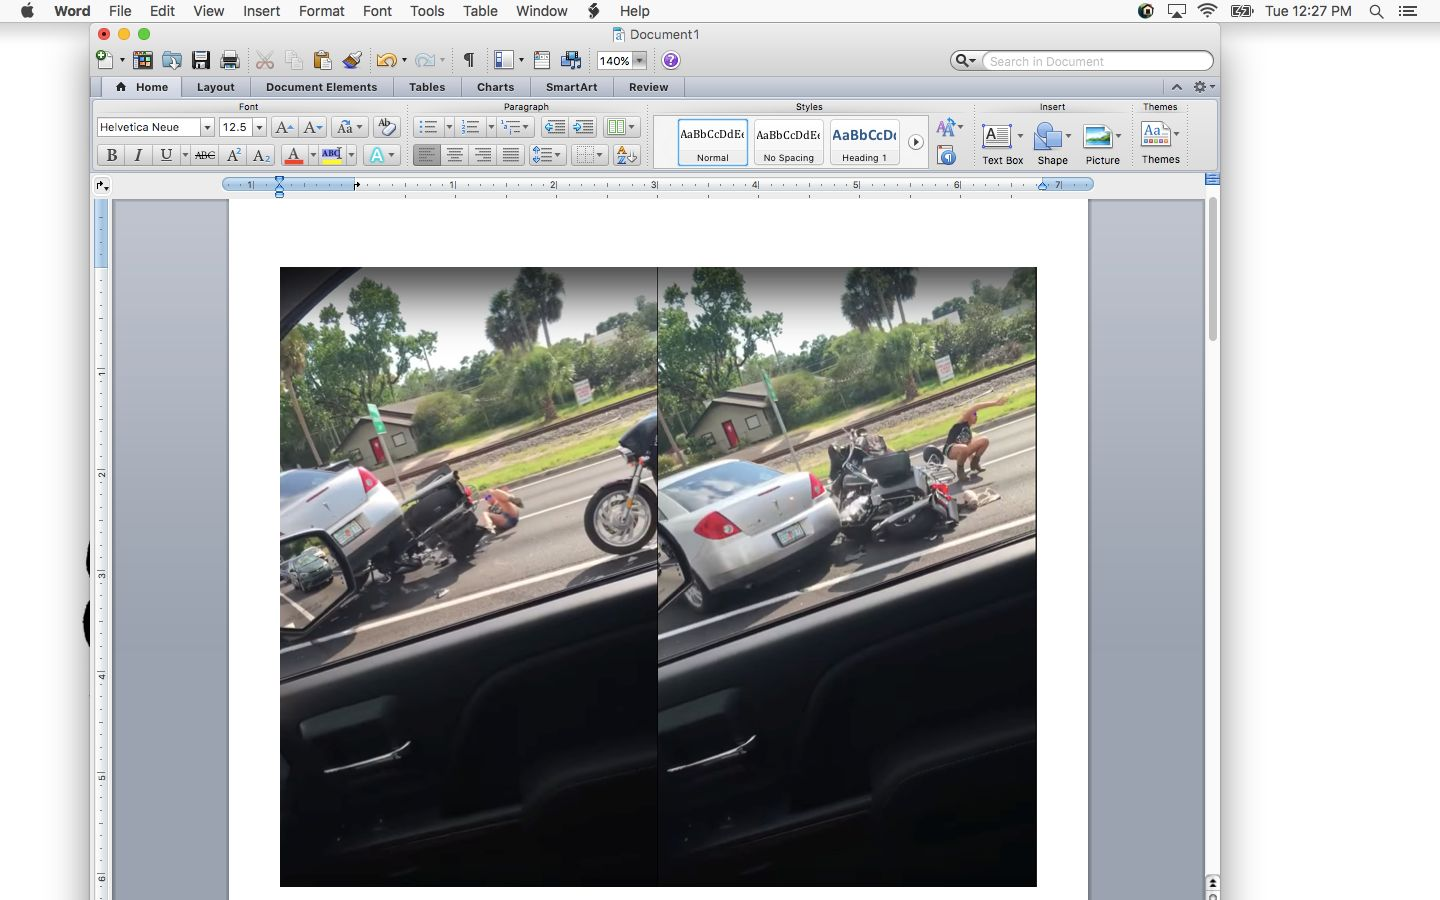 Video uploaded to YouTube shows the silver sedan driving over a motorcycle being peeling away from the scene.